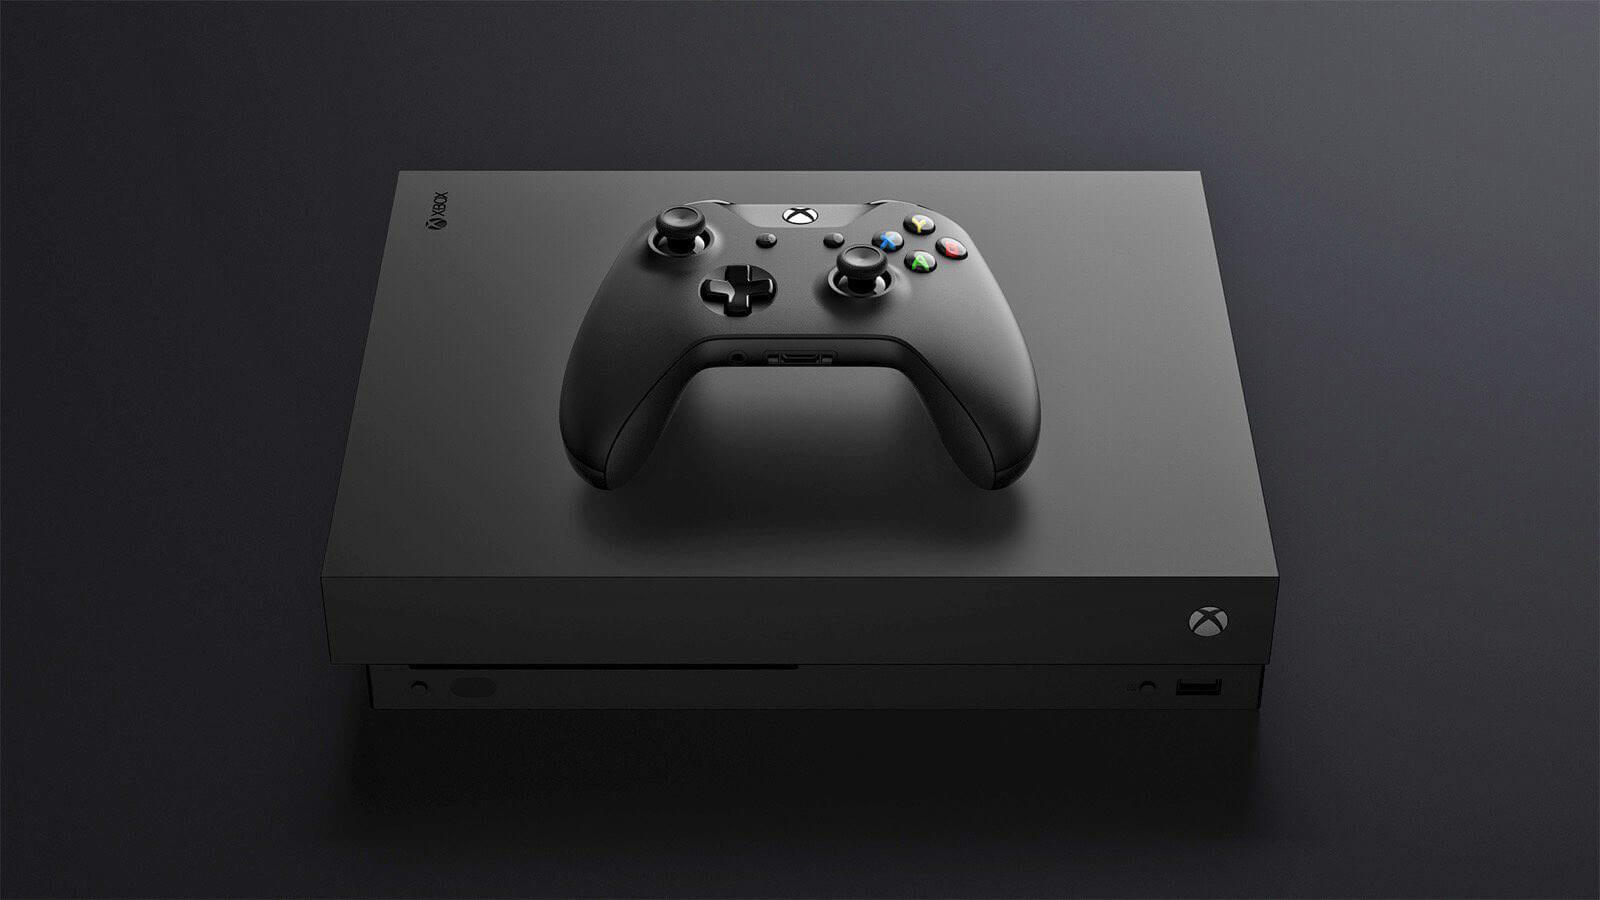 The Xbox One X will natively support 1440p displays